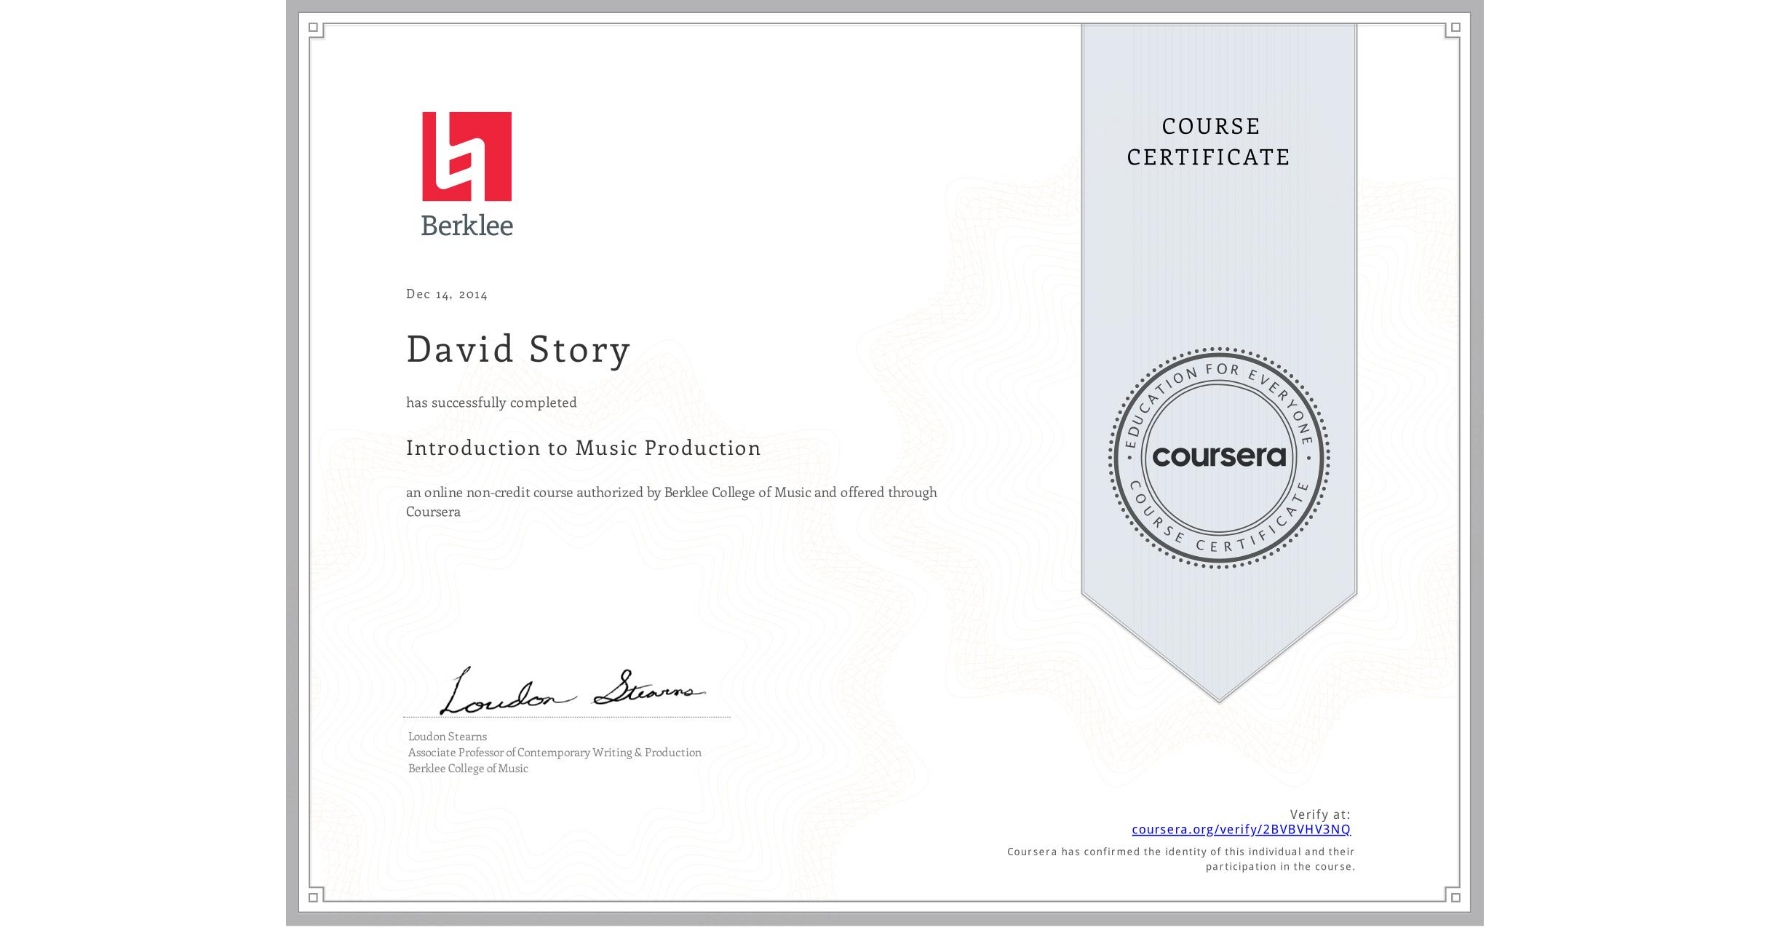 View certificate for David Story, Introduction to Music Production, an online non-credit course authorized by Berklee College of Music and offered through Coursera